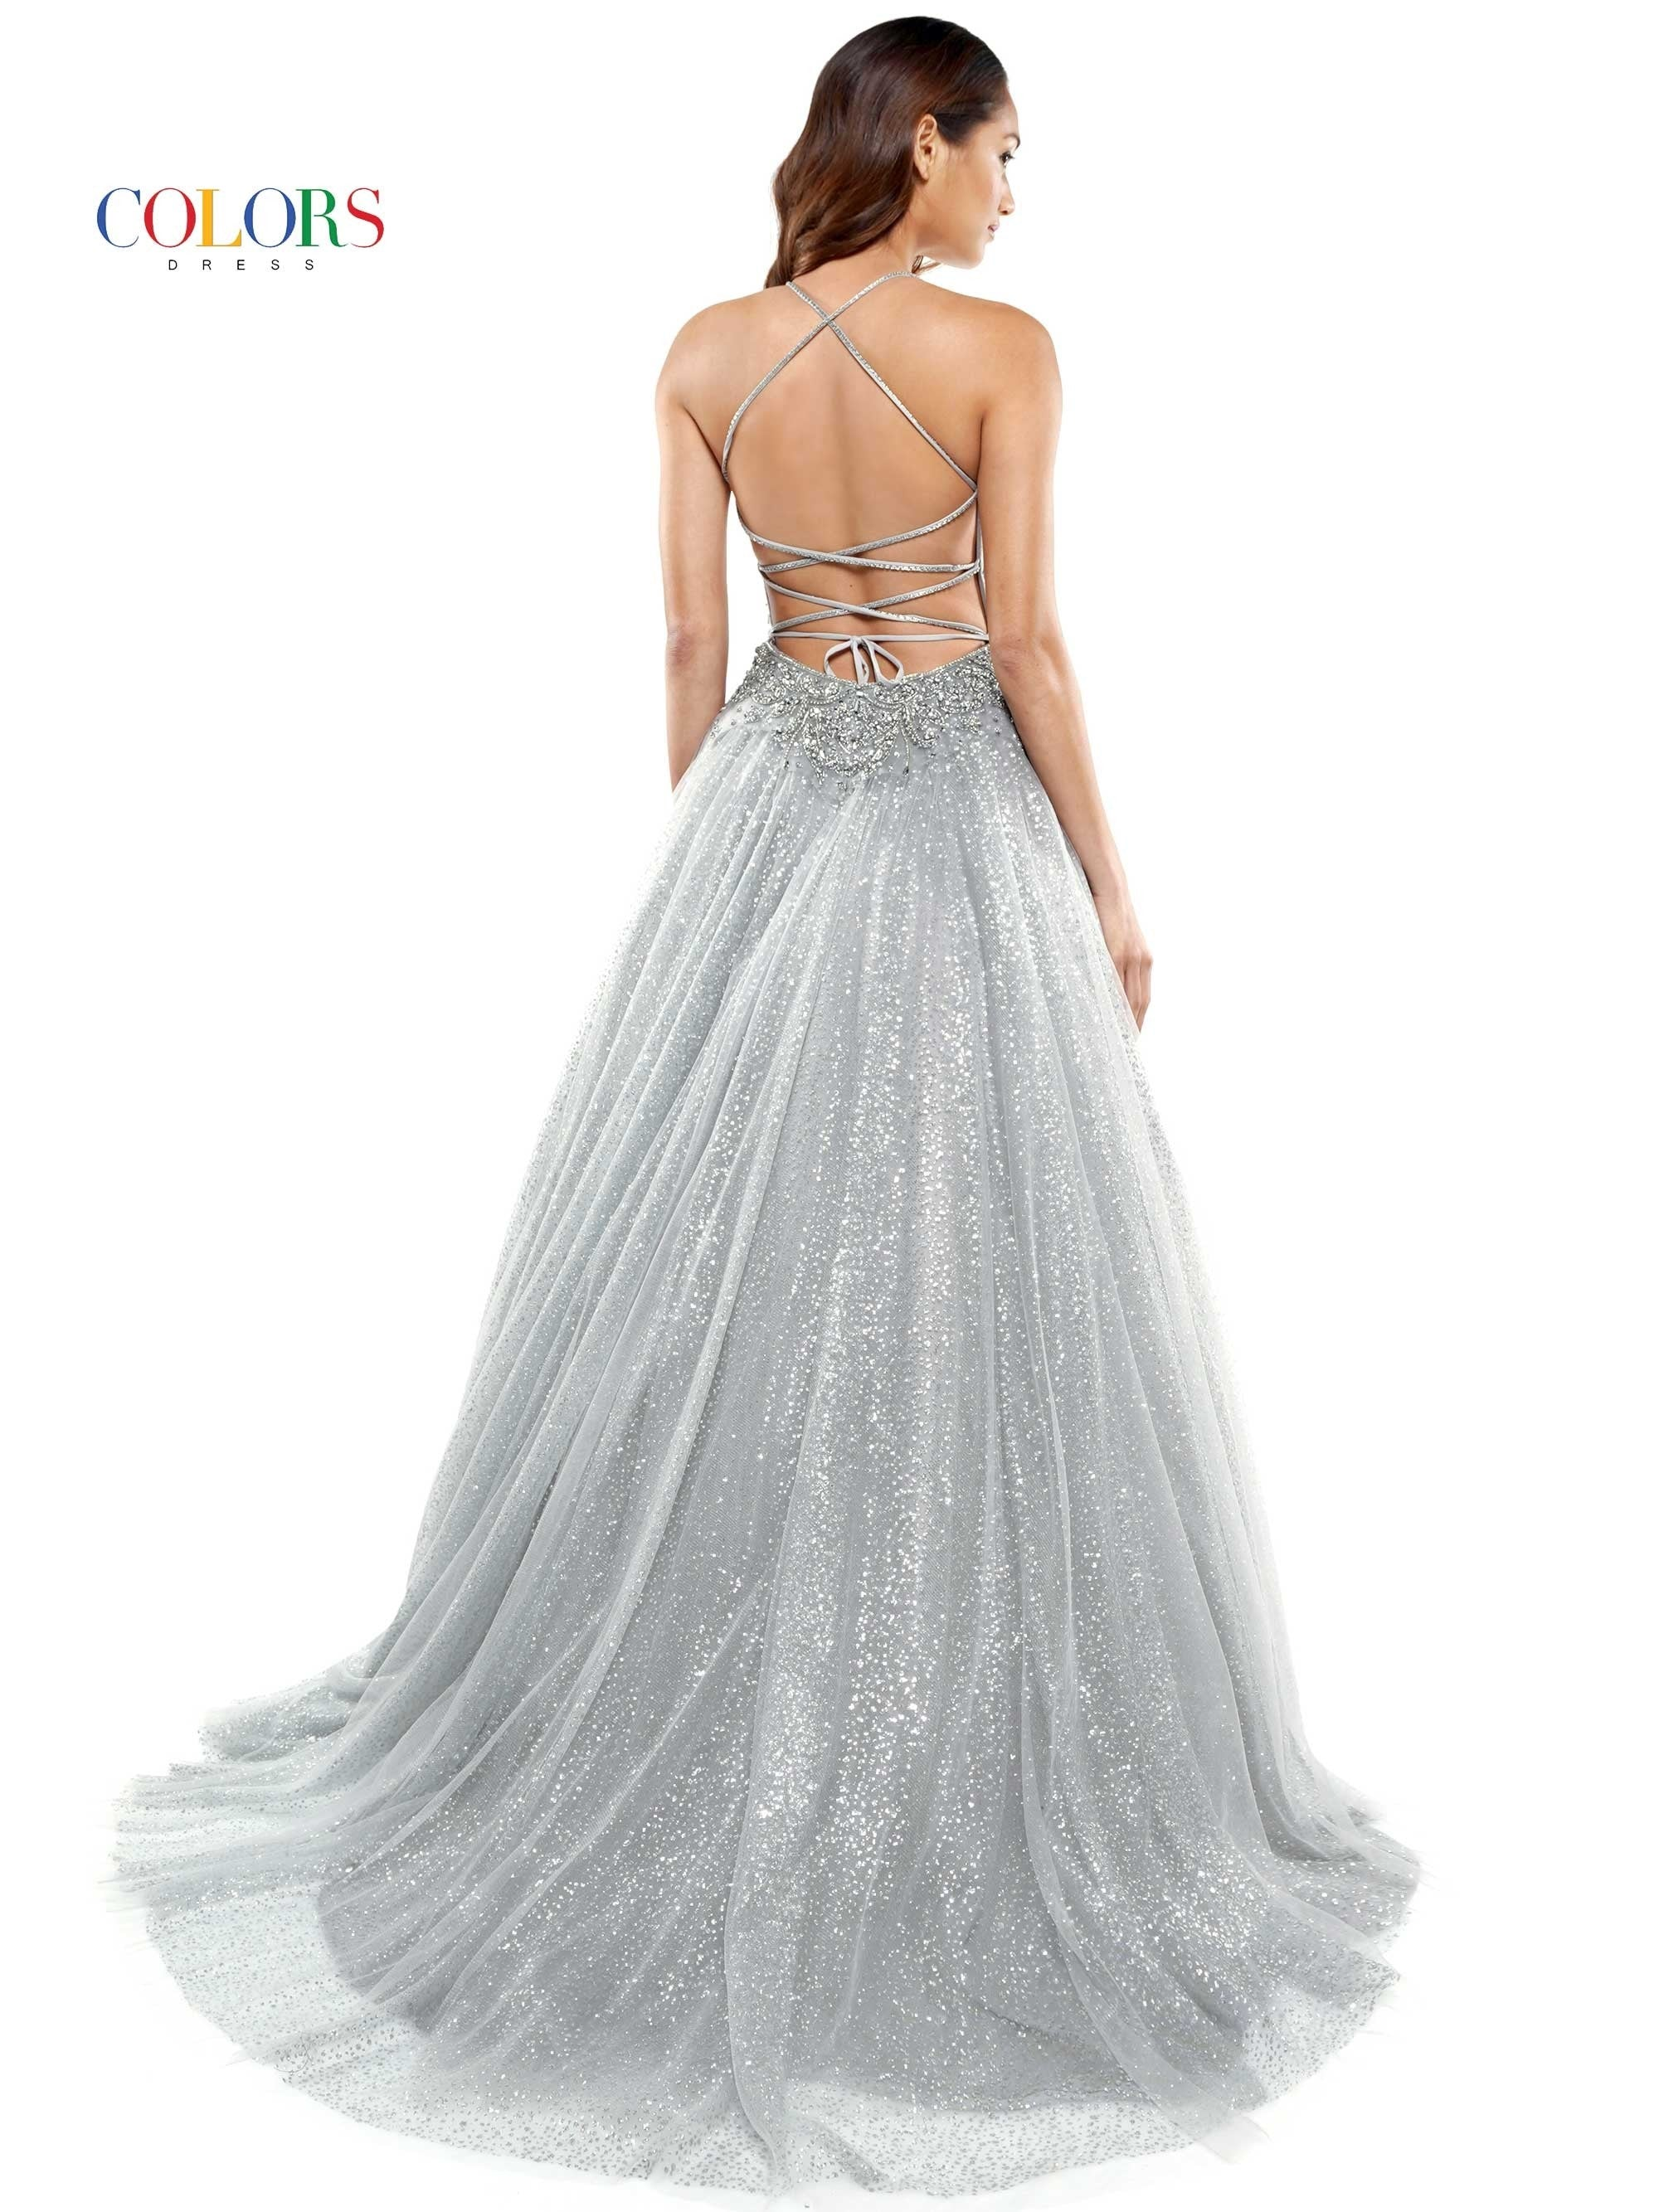 2264 - beaded bodice glitter tulle ball gown with plunged neckline & beaded strappy back